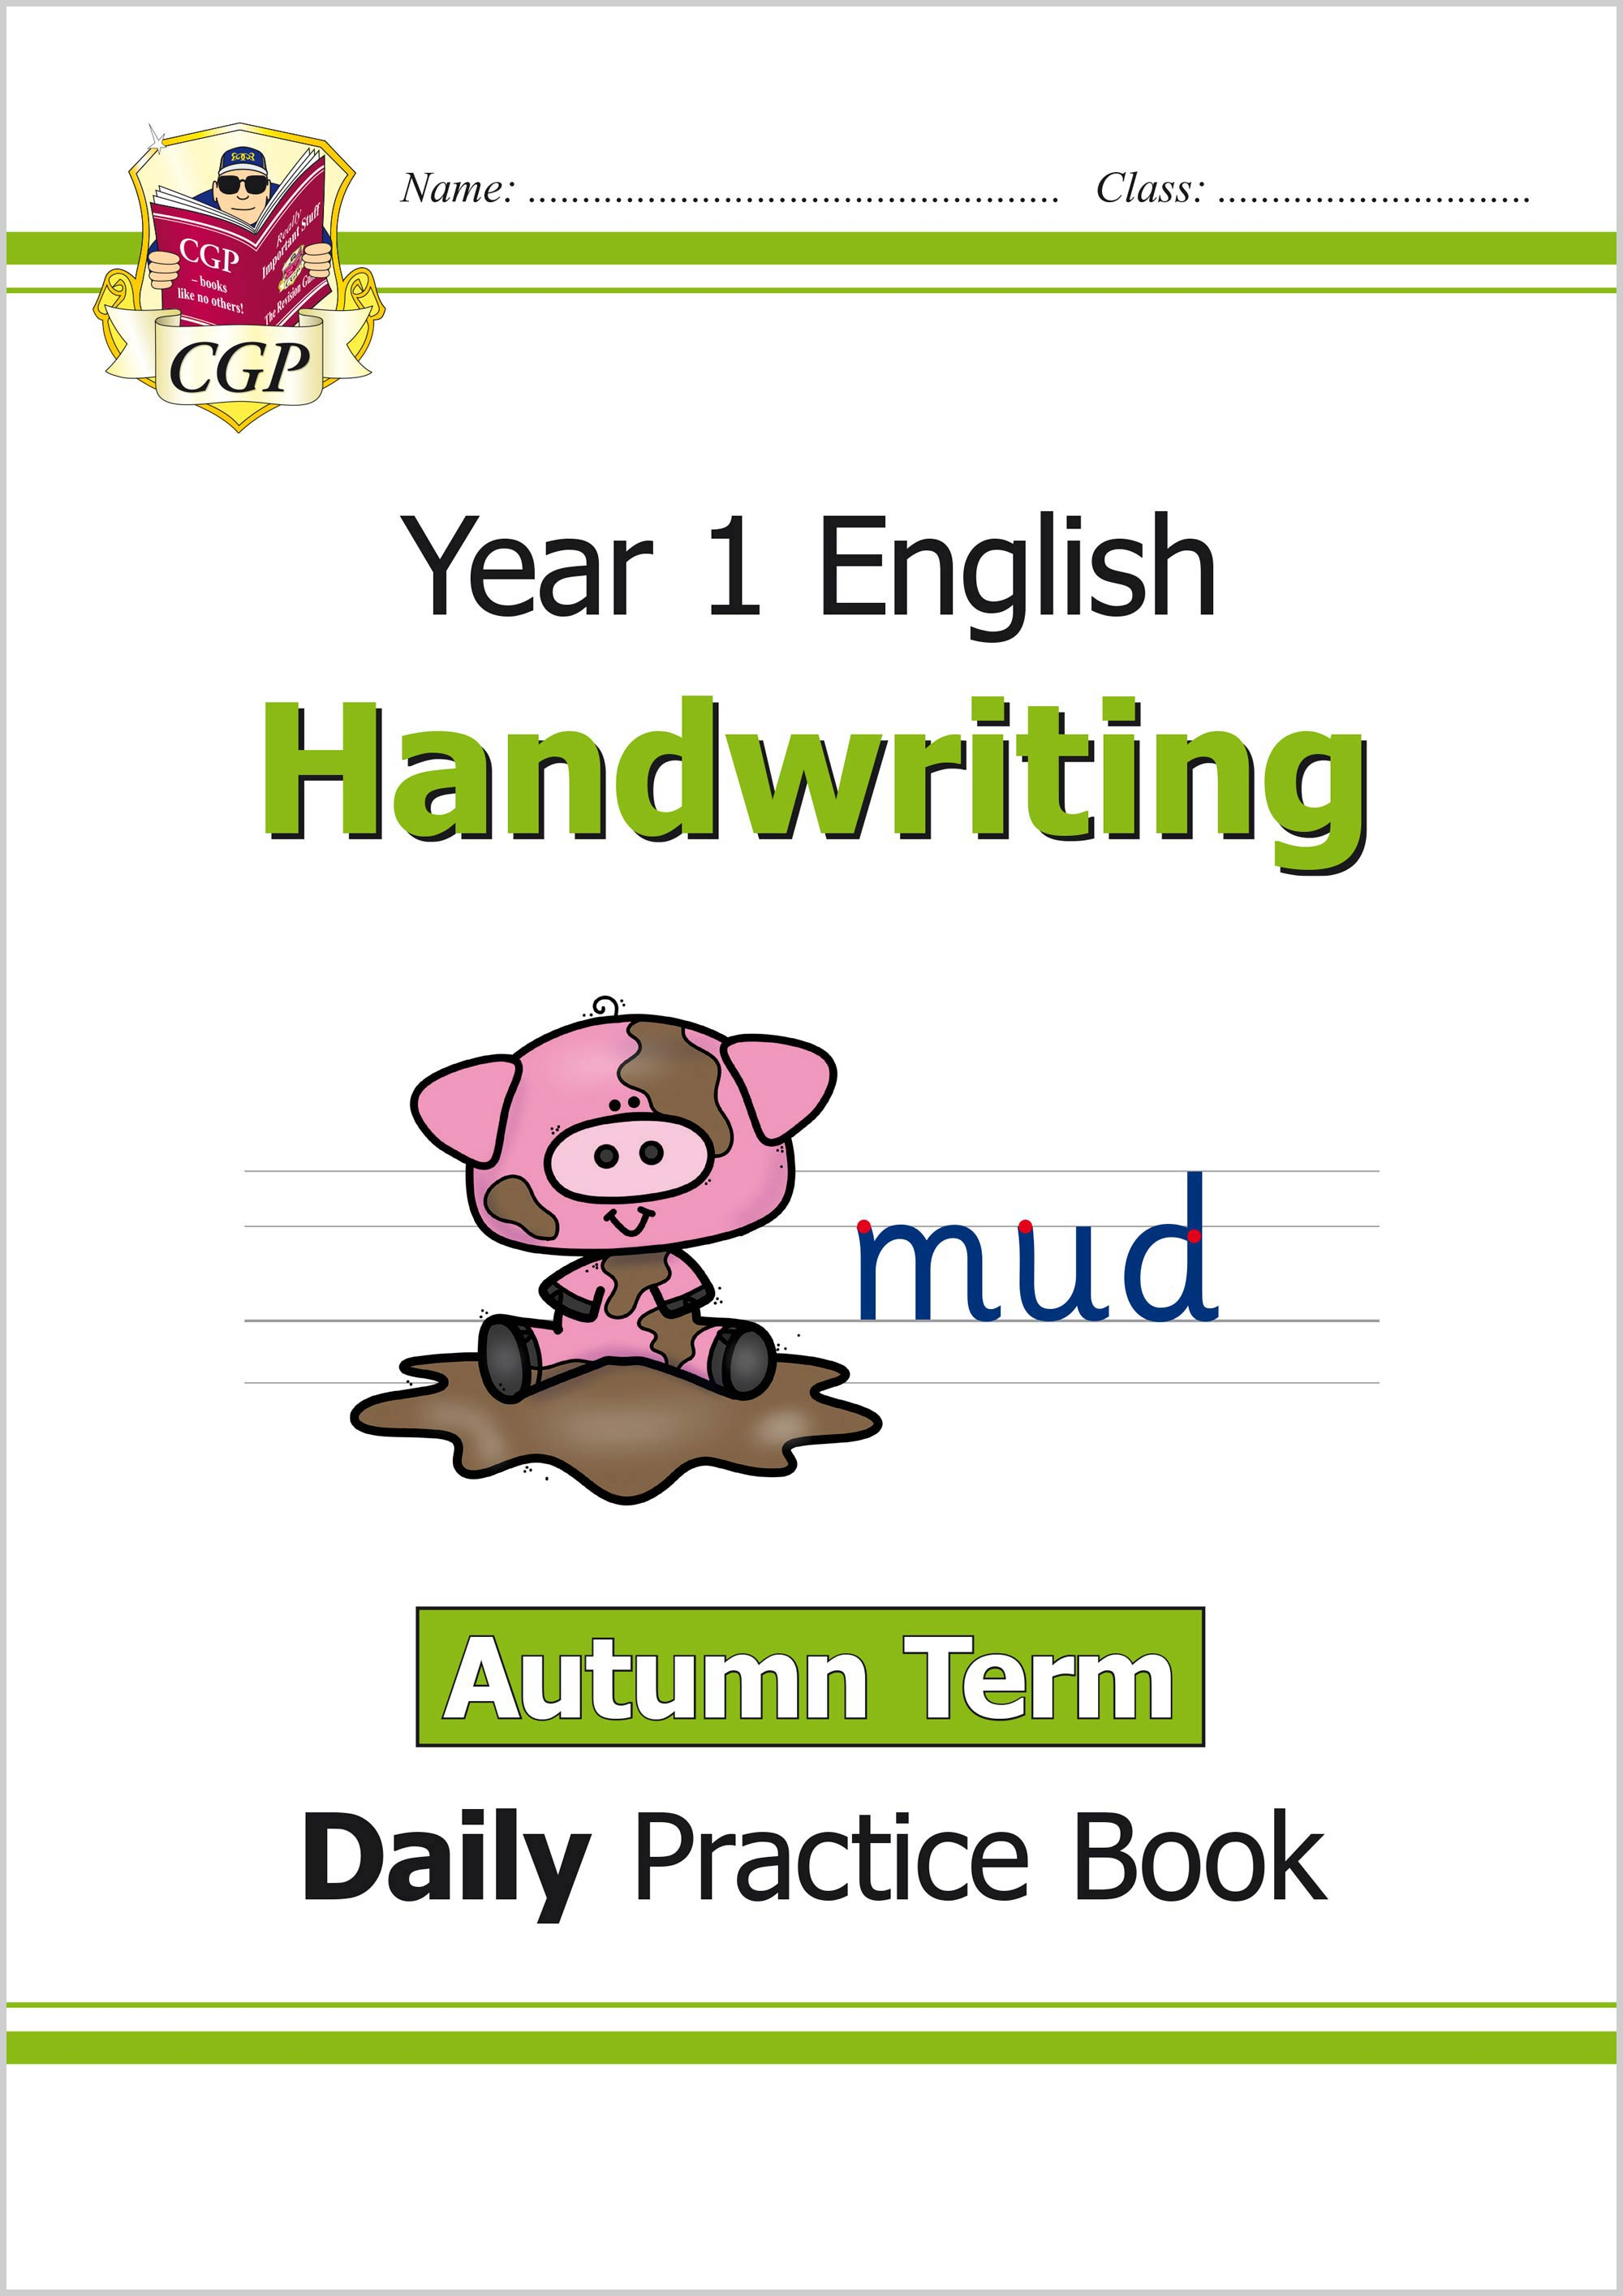 E1HWAU11 - New KS1 Handwriting Daily Practice Book: Year 1 - Autumn Term